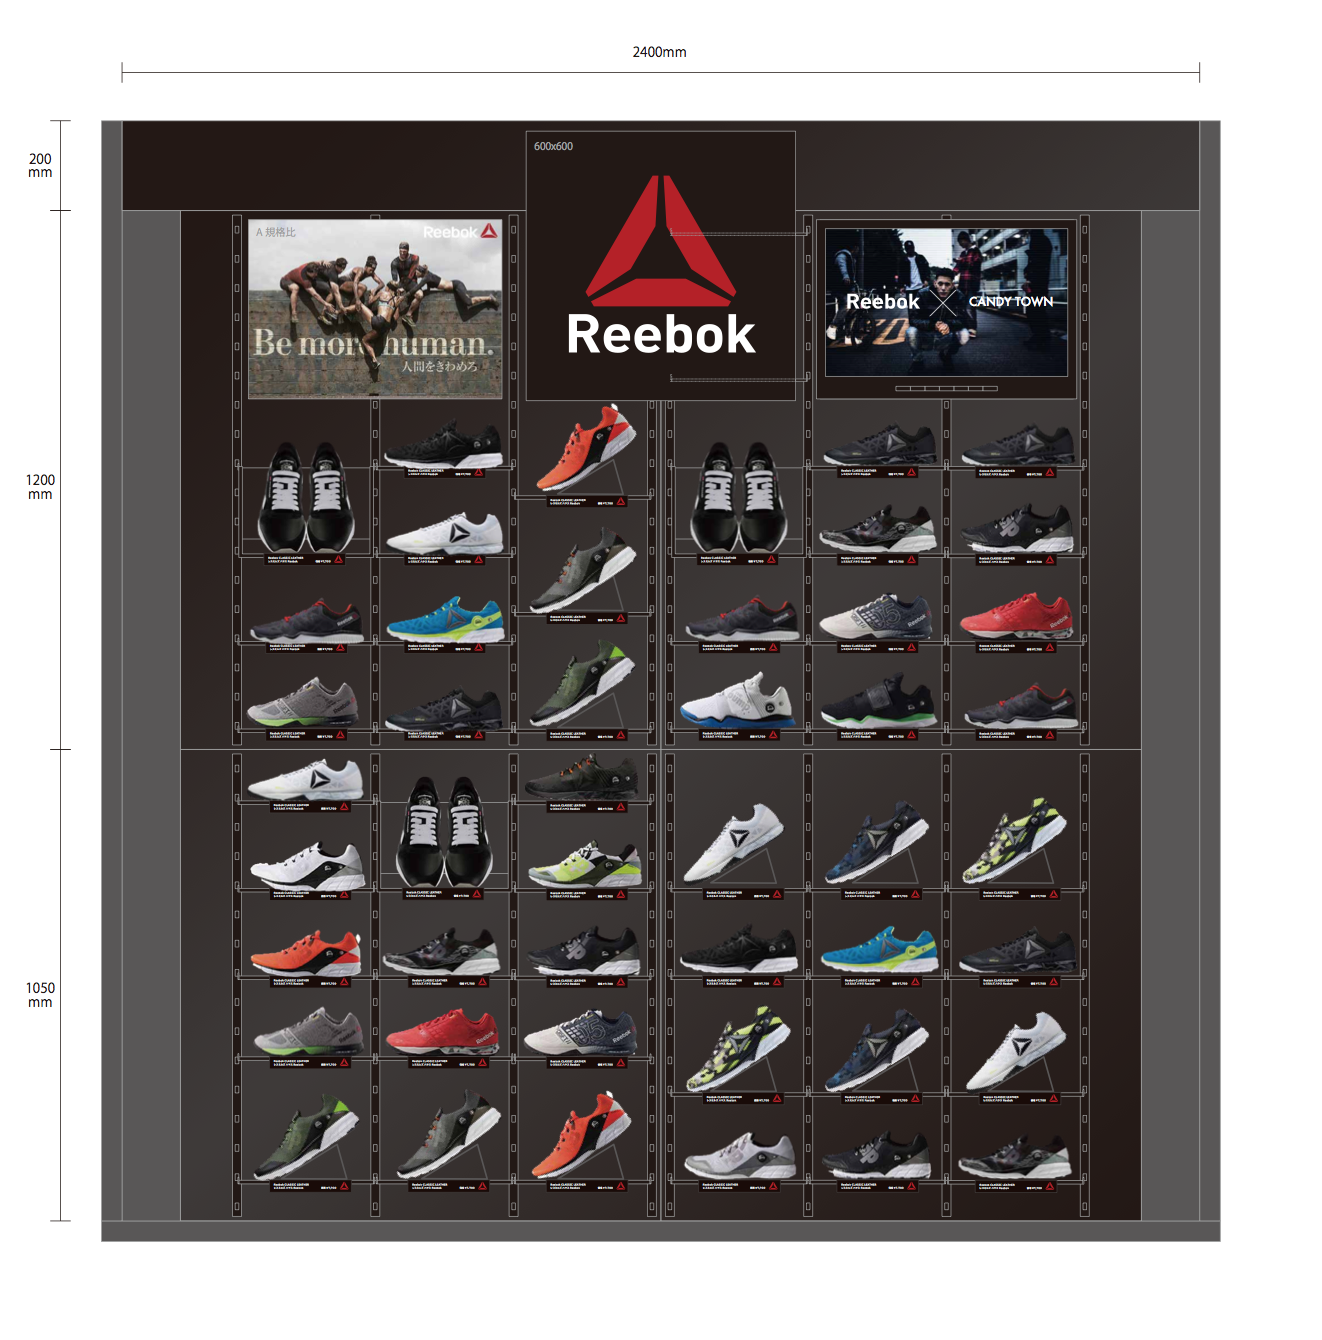 Reebok - Xebio Sports -    Shelf design1